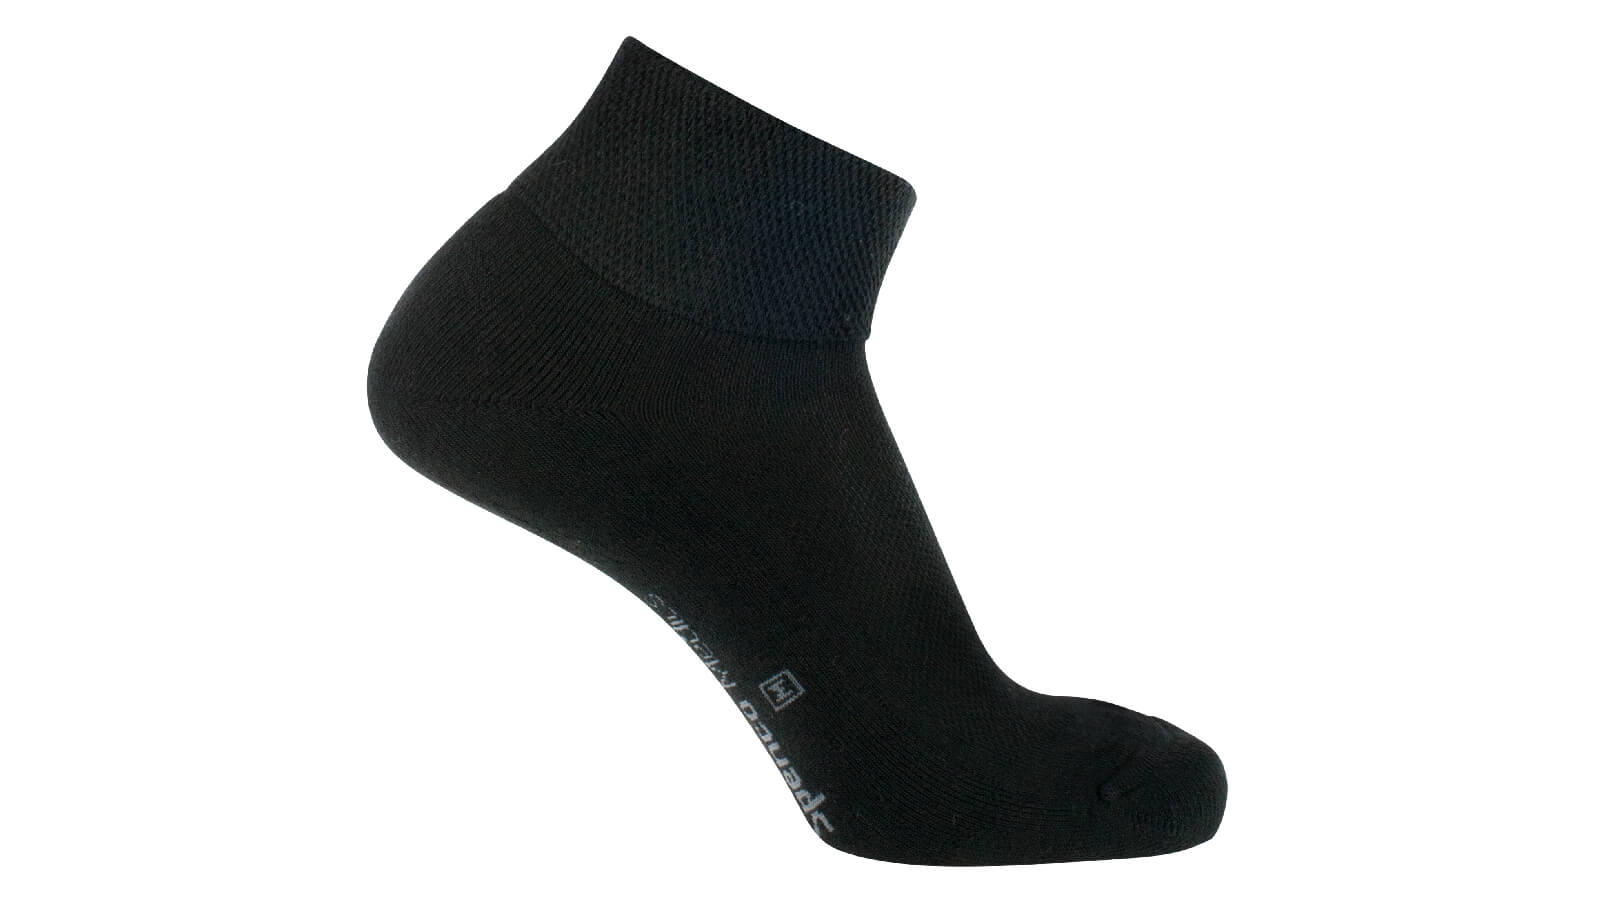 Spenco medics diabetic plus crew socks in black